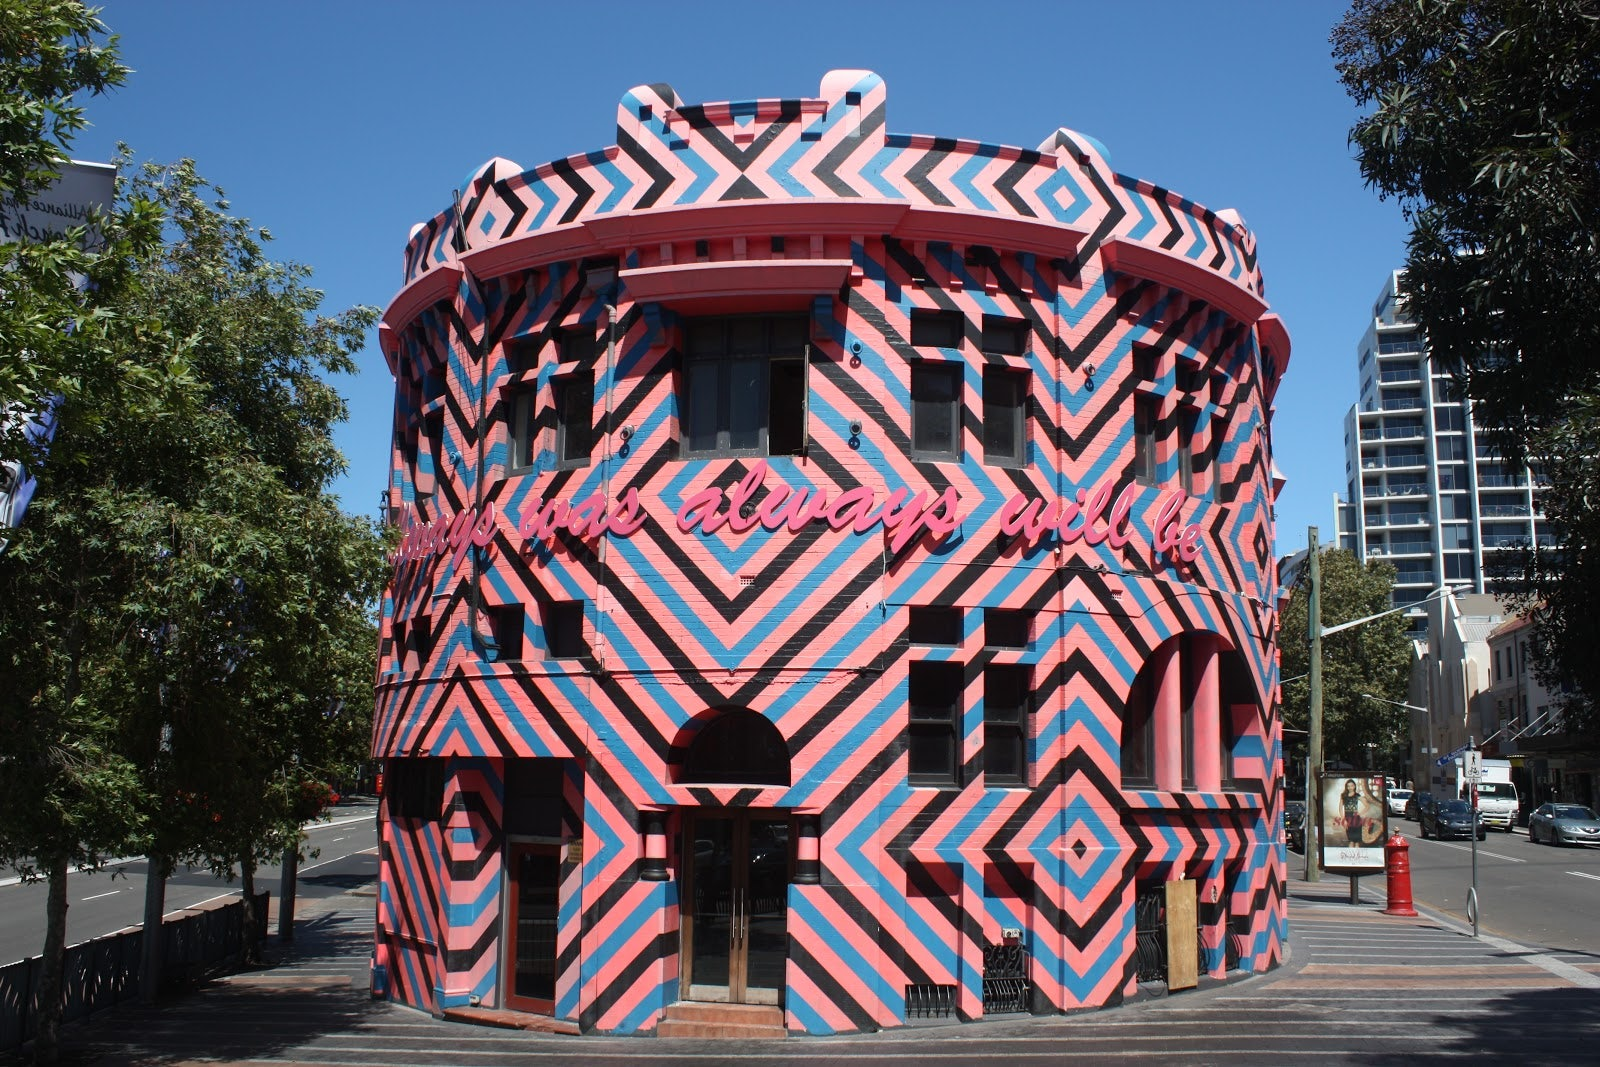 Picture of a pink building in Oxford street located close to Cambridge hotel Sydney